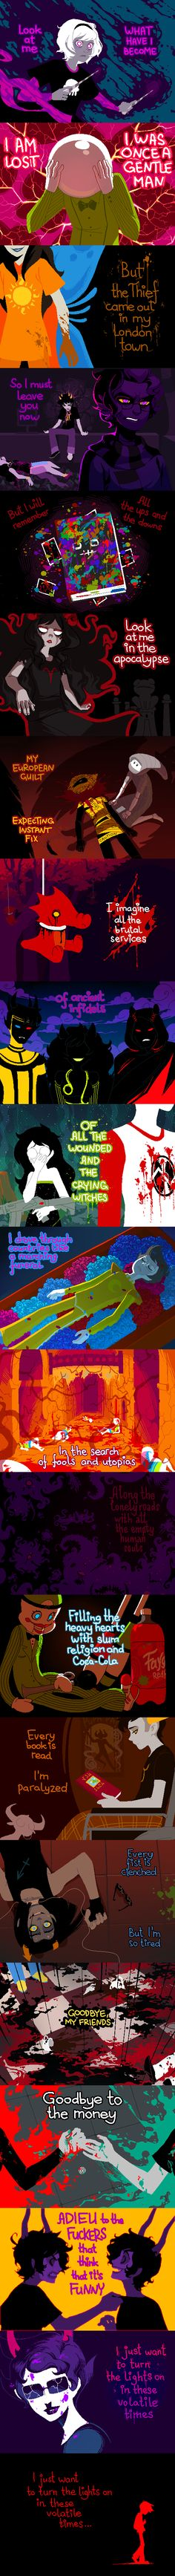 Volatile Times by the wonderful Xamag. This is... one of the best Homestuck fanarts I've ever seen.